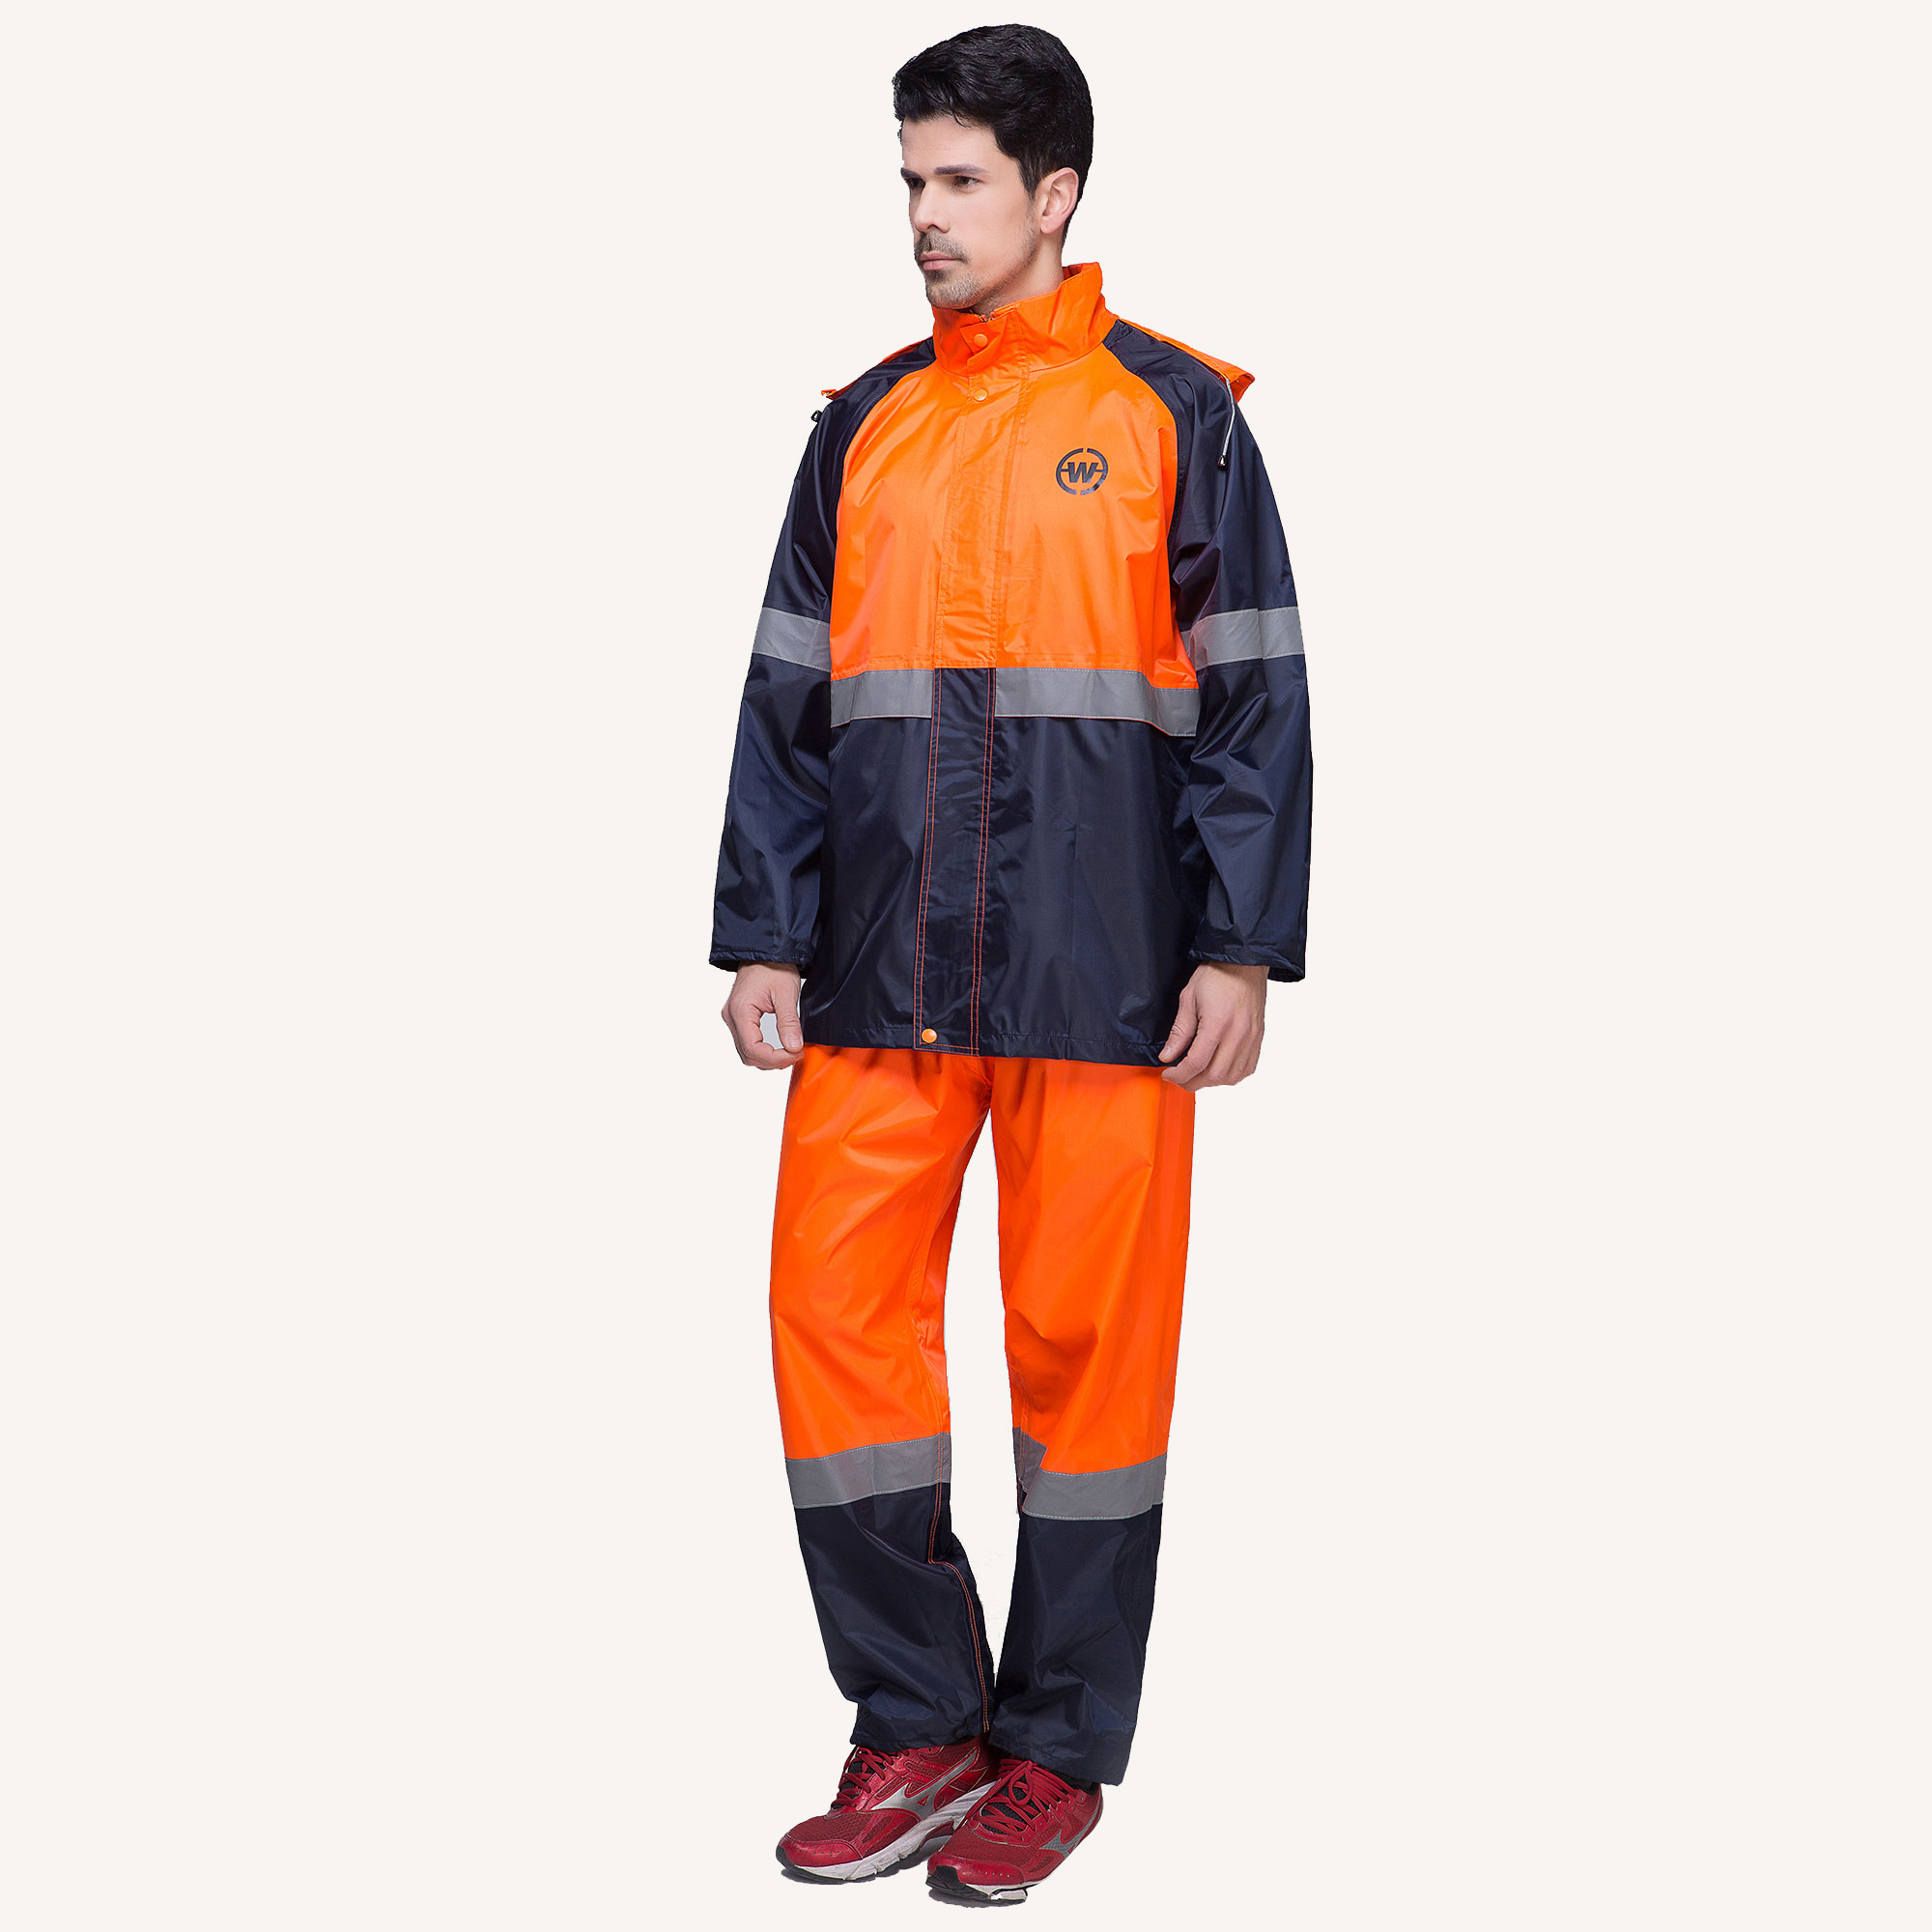 7052 Multicolor Safety Waterproof Anzug Beste Regenjacke